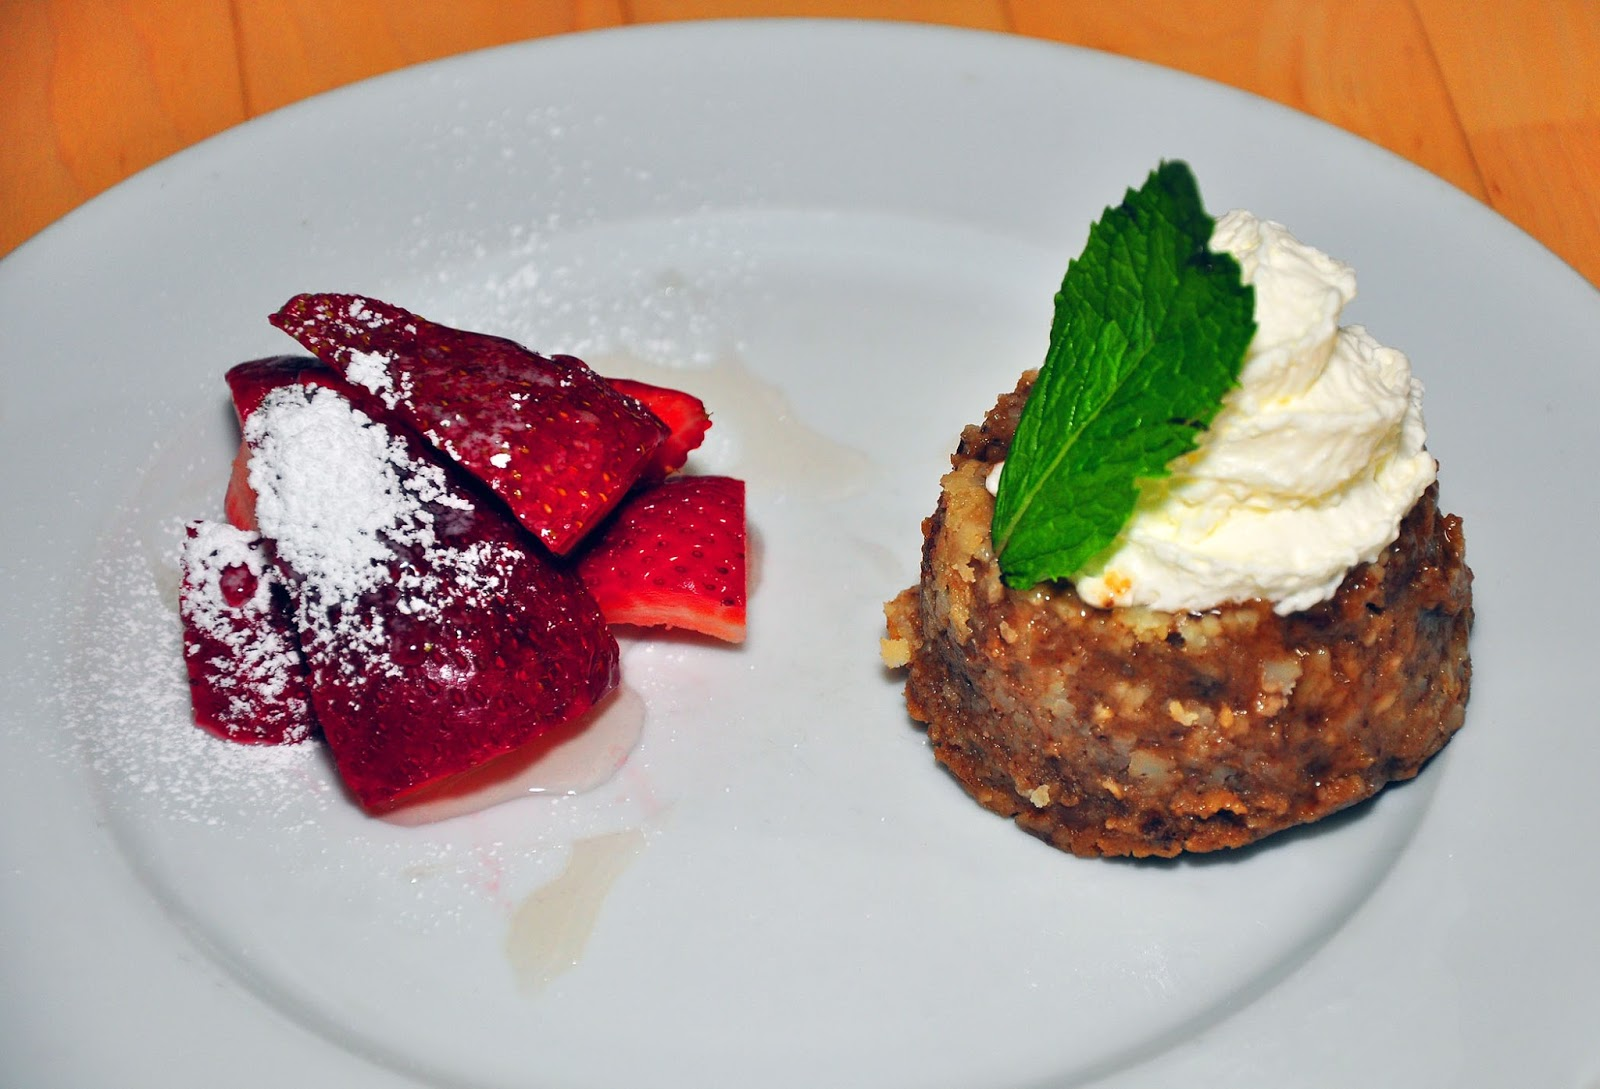 chestnut flan with strawberries in rum syrup and whipped cream